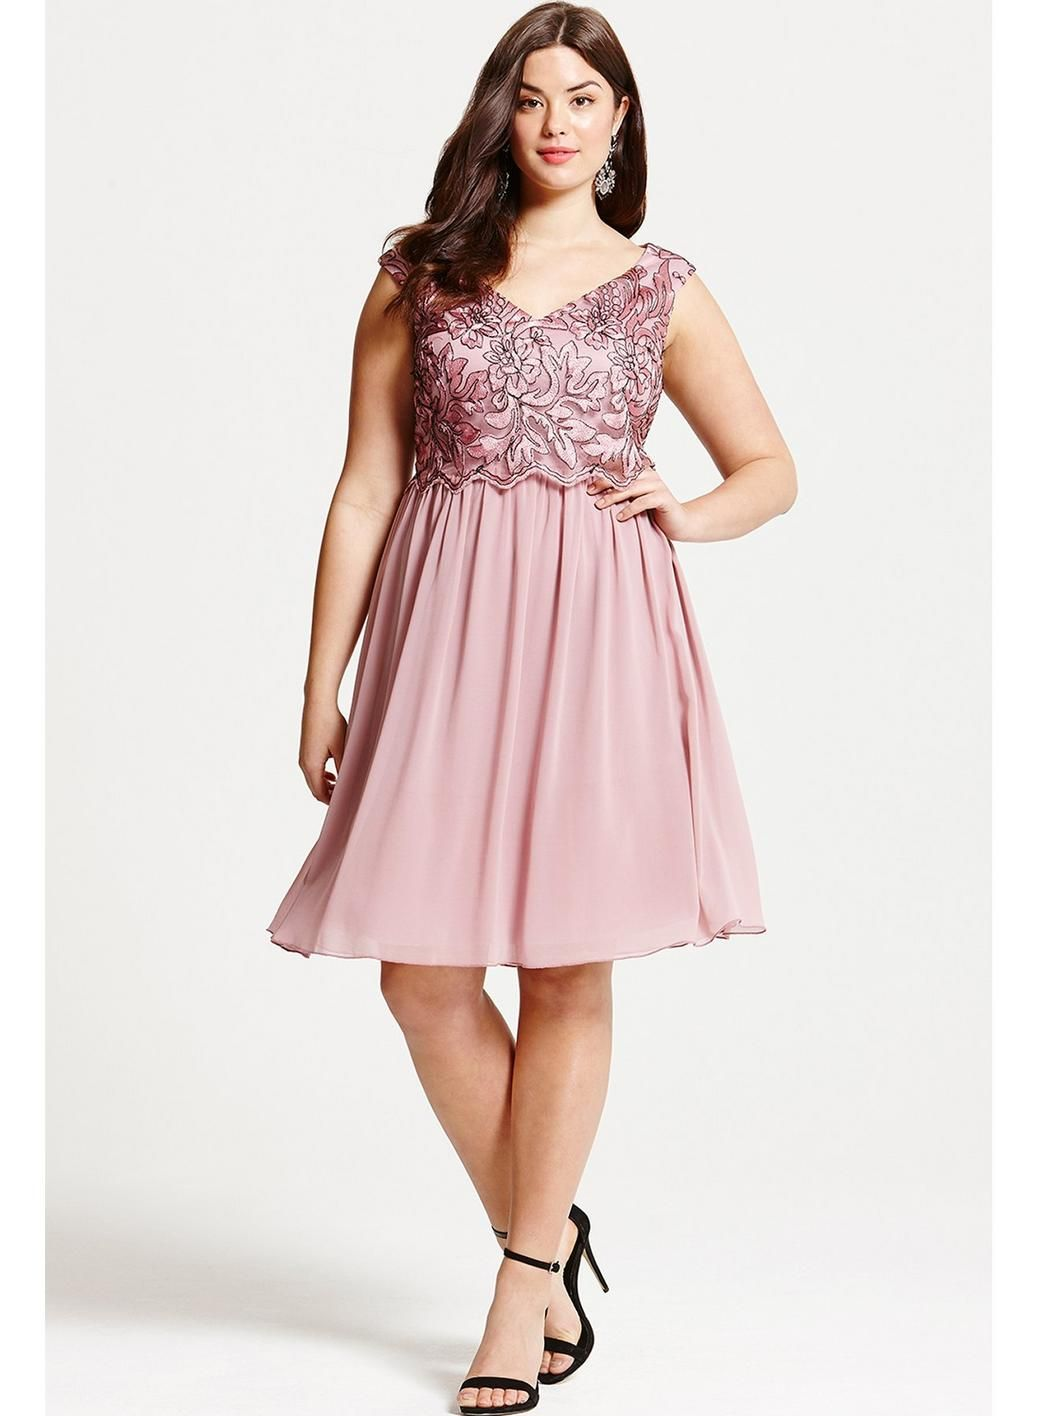 Dusty Pink Embroidered Prom Dress, http://www.very.co.uk/little ...